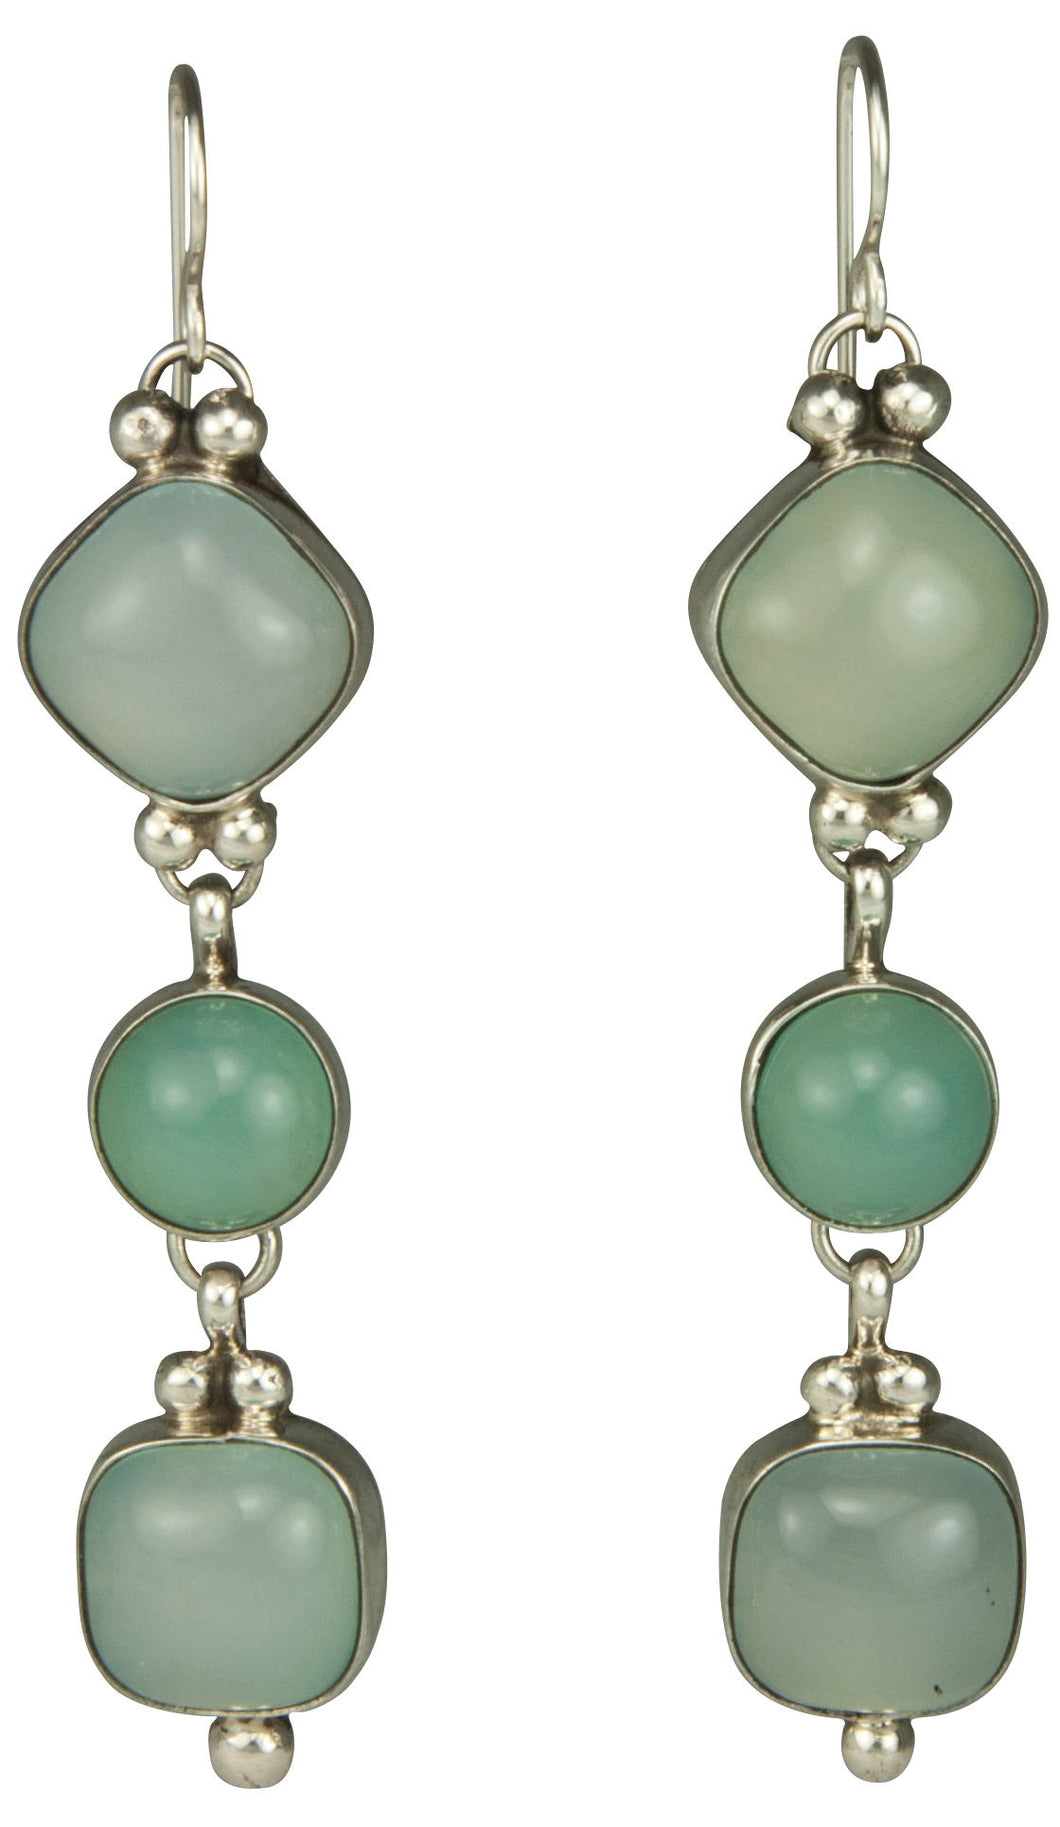 Navajo Native American Nevada Blue Chalcedony Earrings by Platero SKU229287